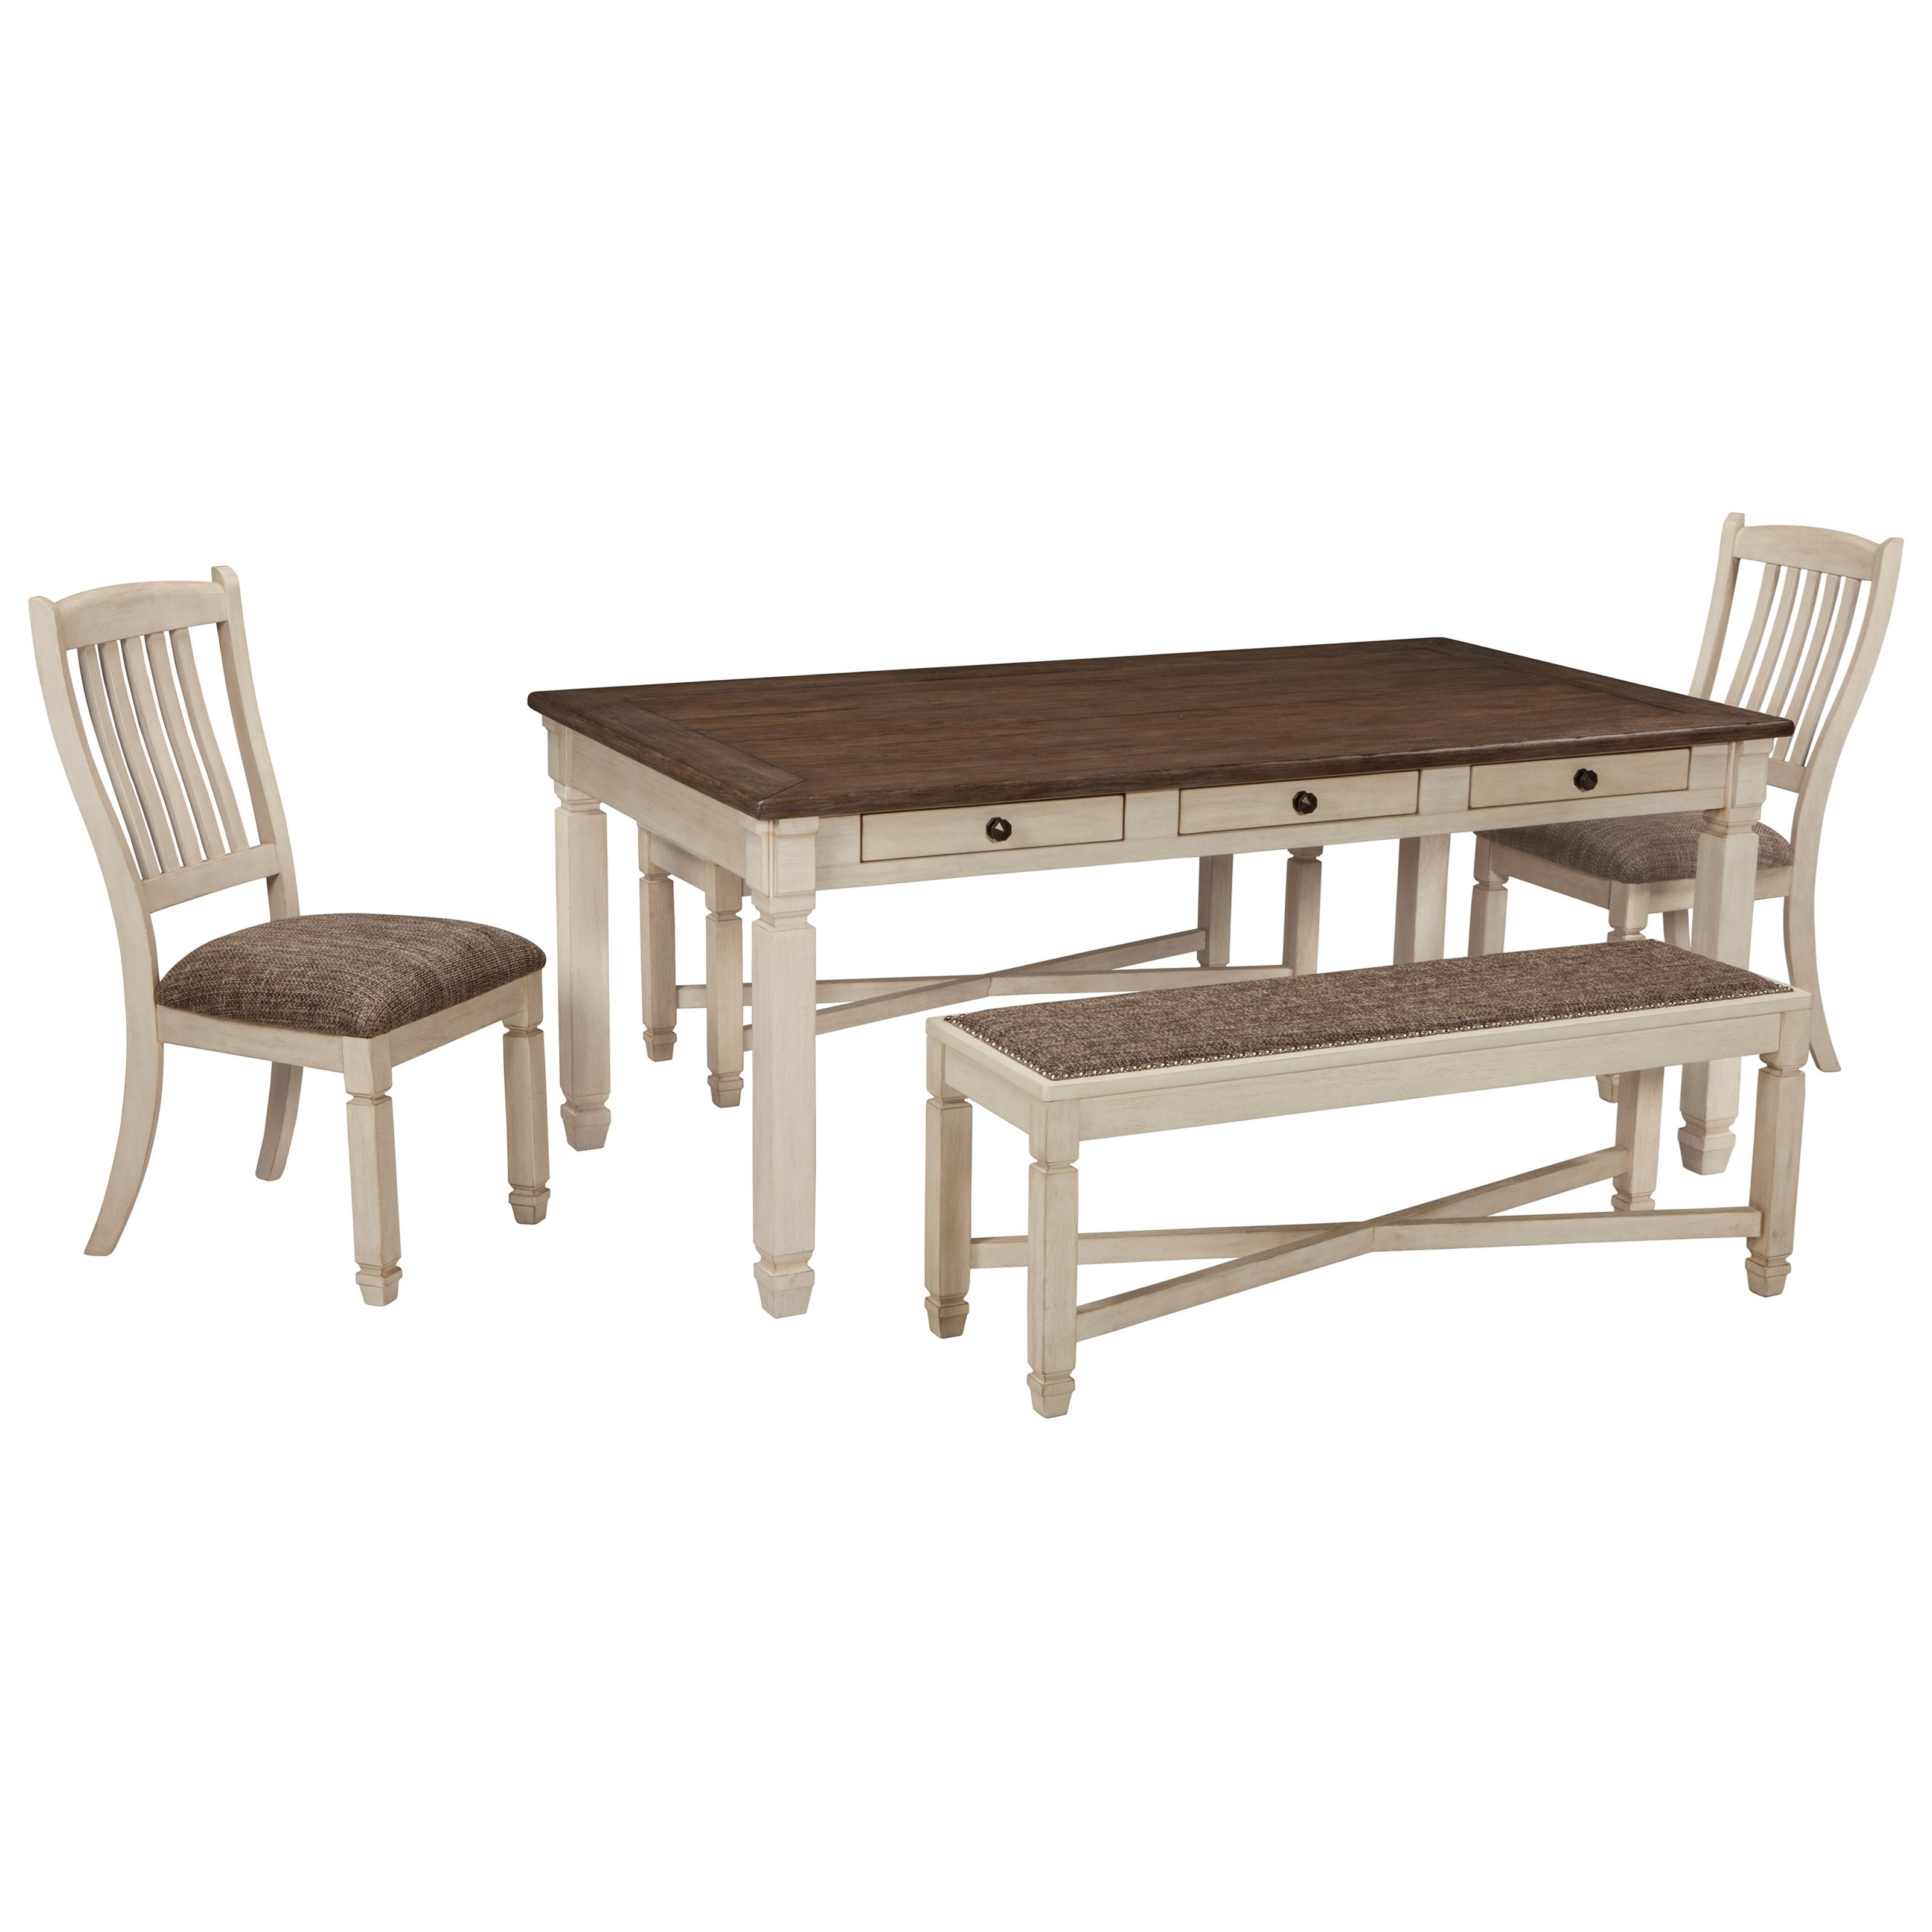 Bolanburg Table and Chair Set with Bench by Ashley (Signature Design) at Johnny Janosik